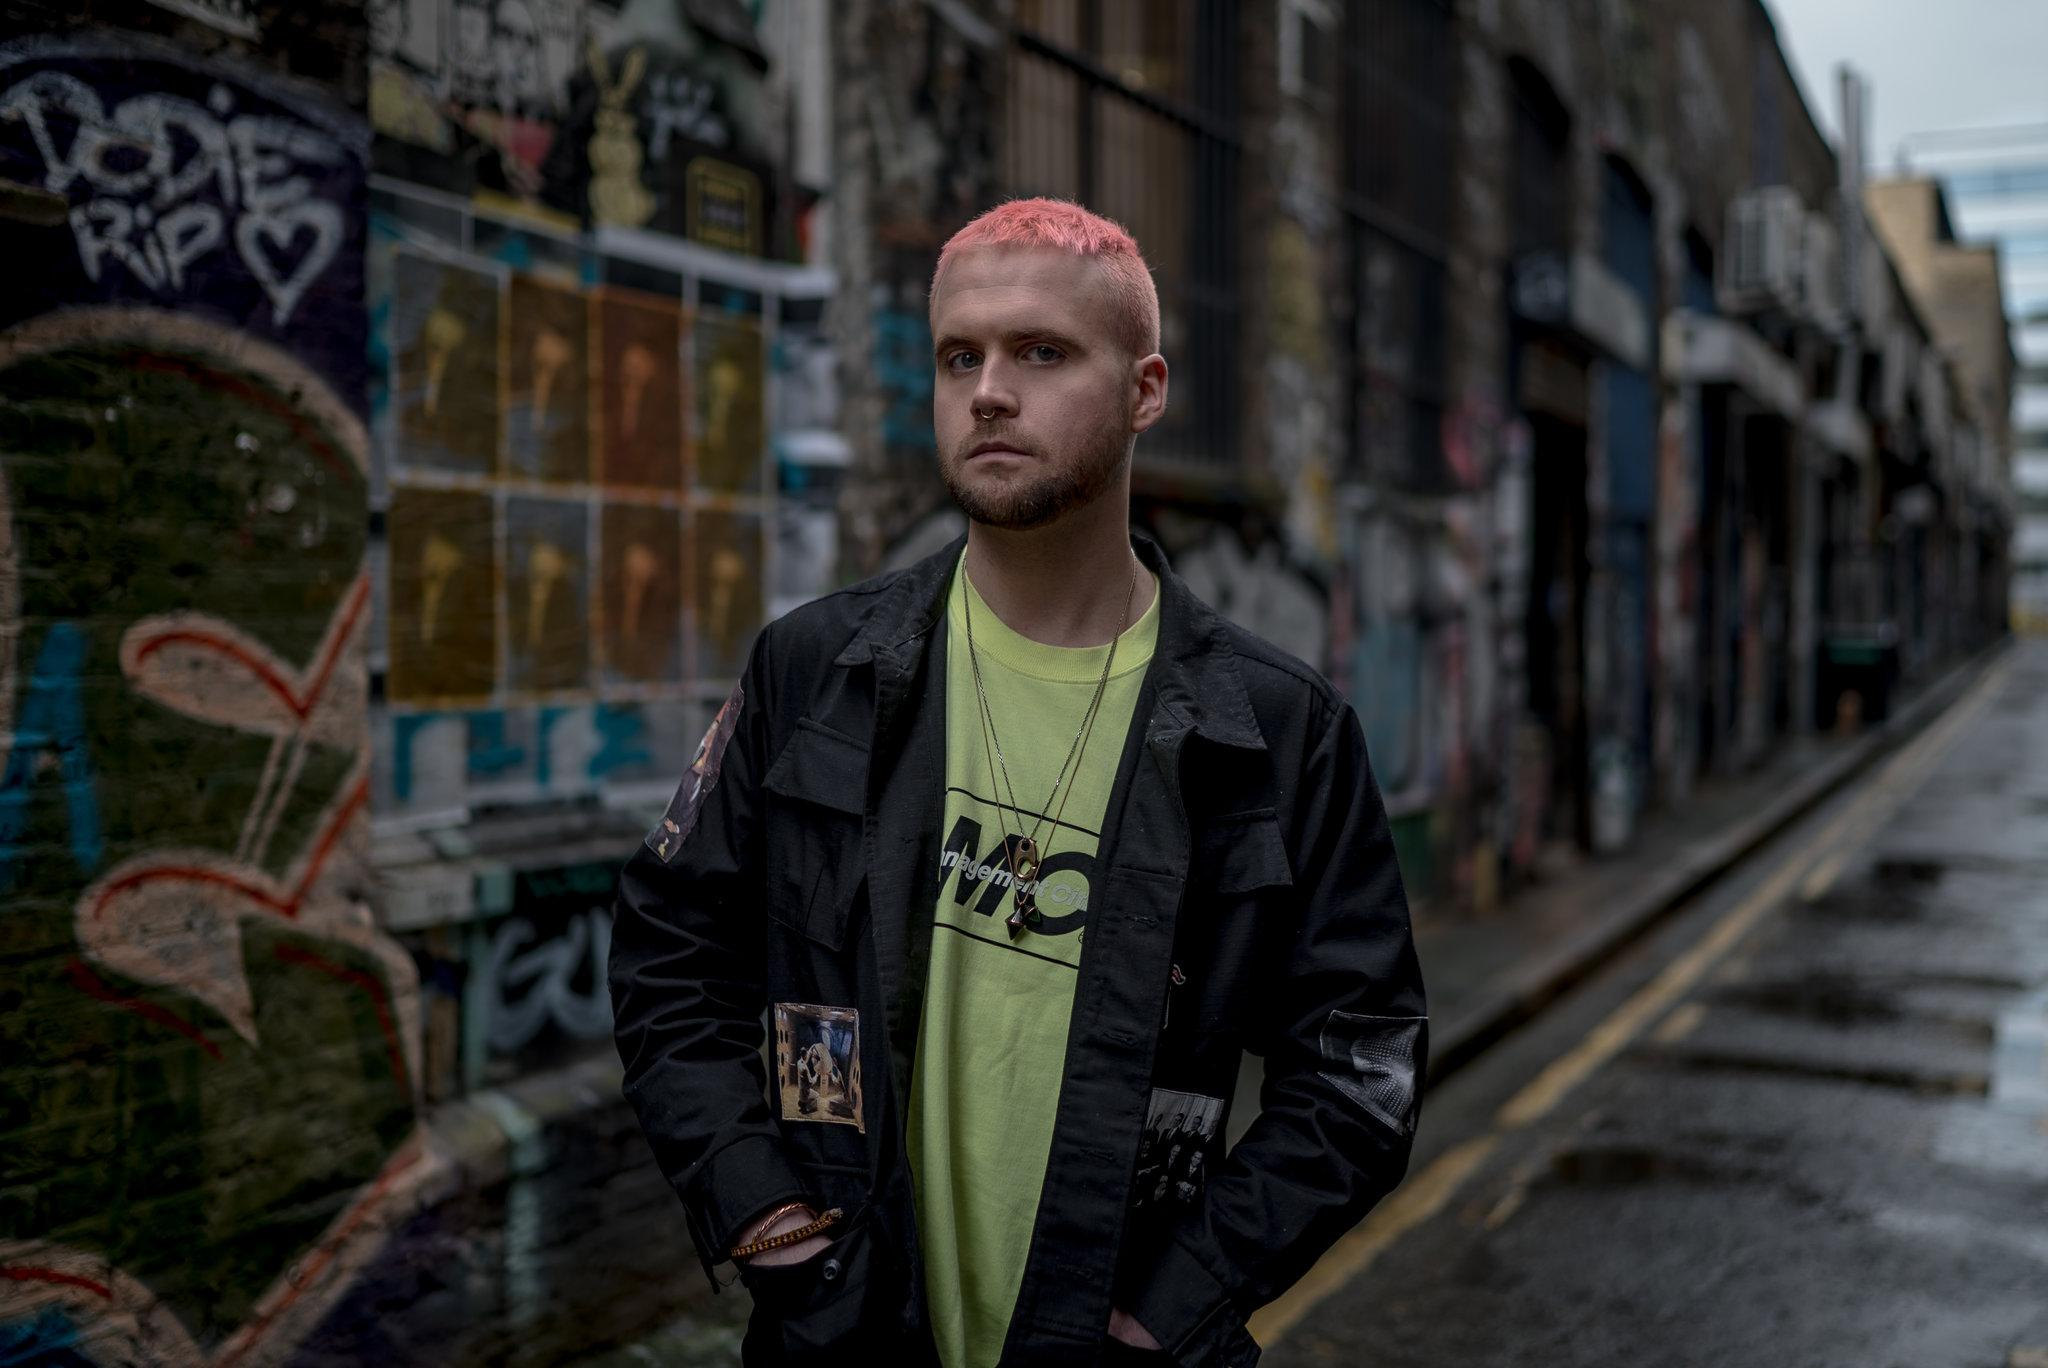 Facebook suspends Cambridge Analytica whistleblower's account